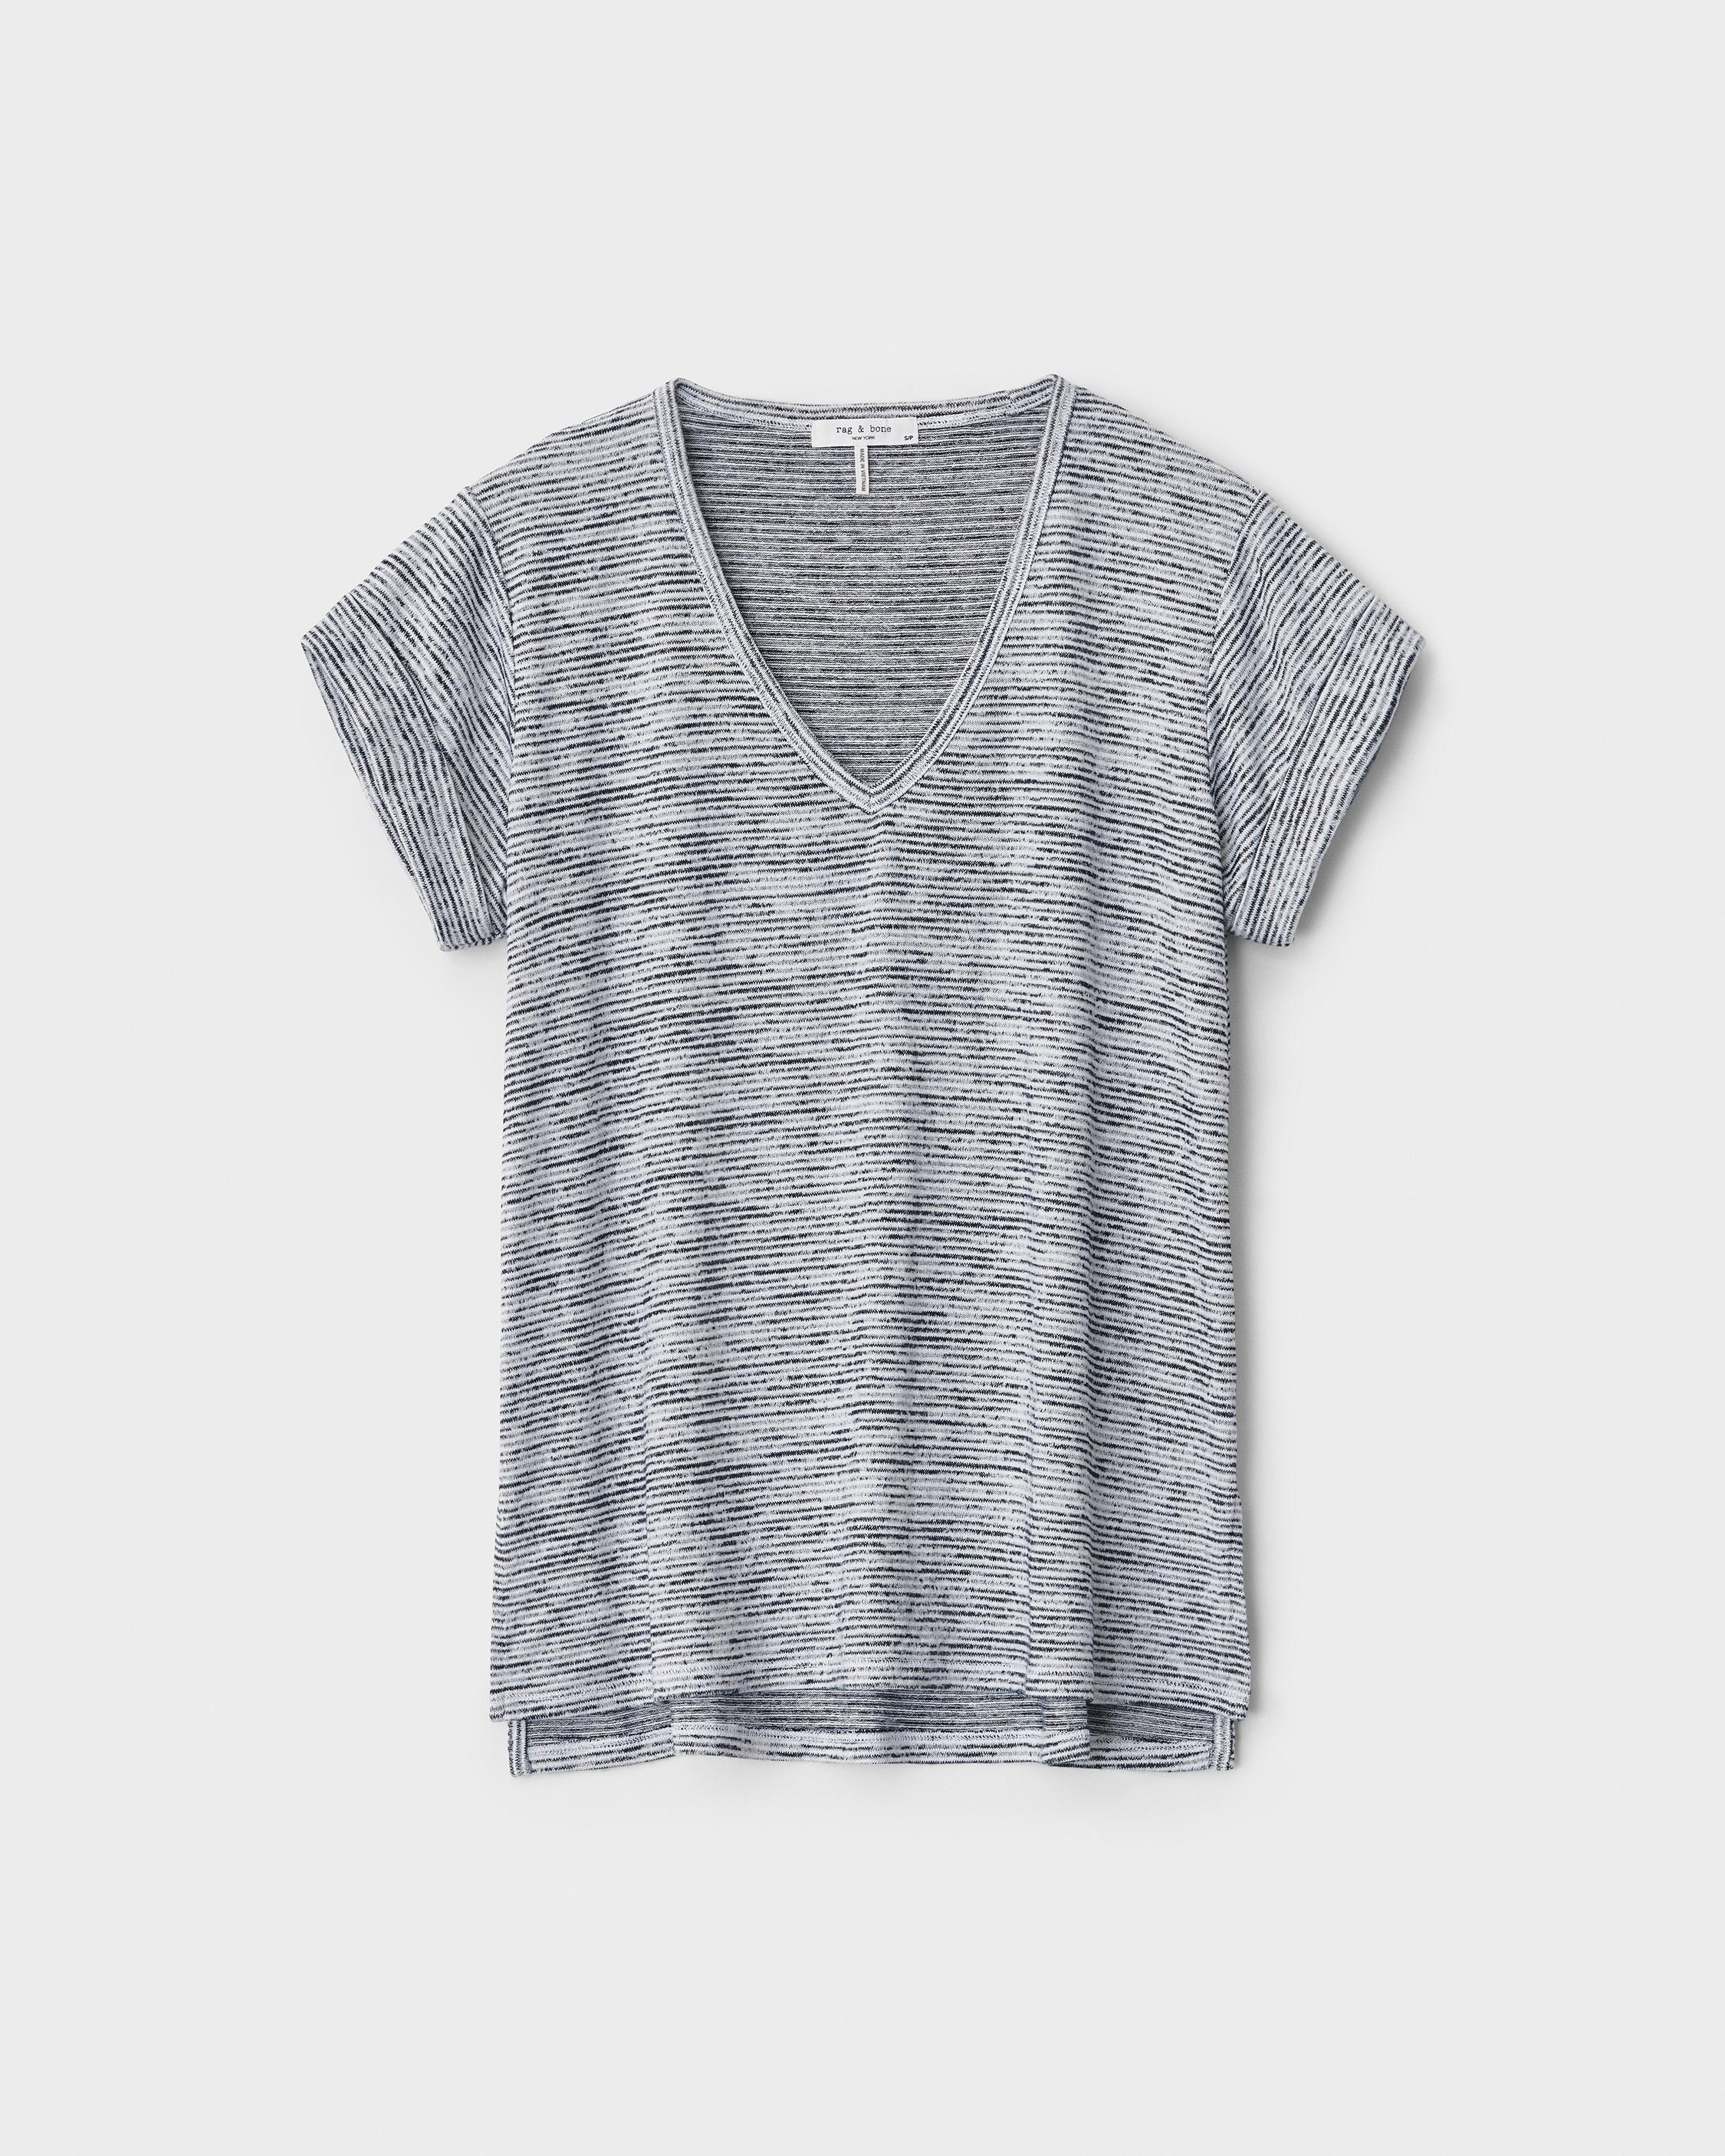 The knit v-neck striped tee 4